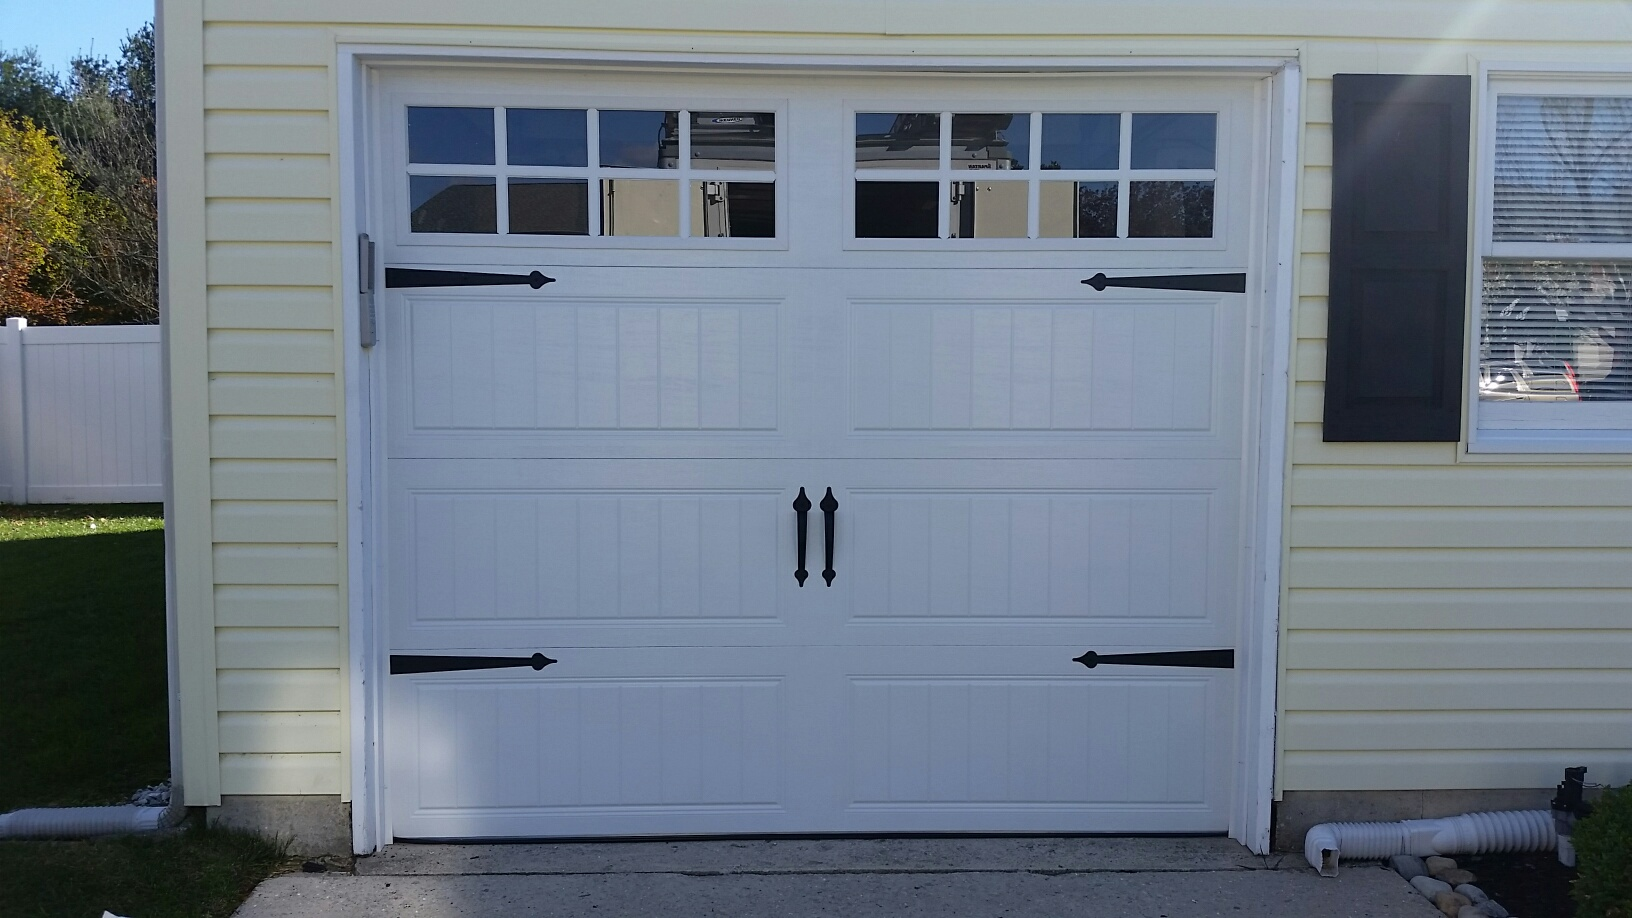 Clopay Garage Door Replacement and Install  Dave Moseley